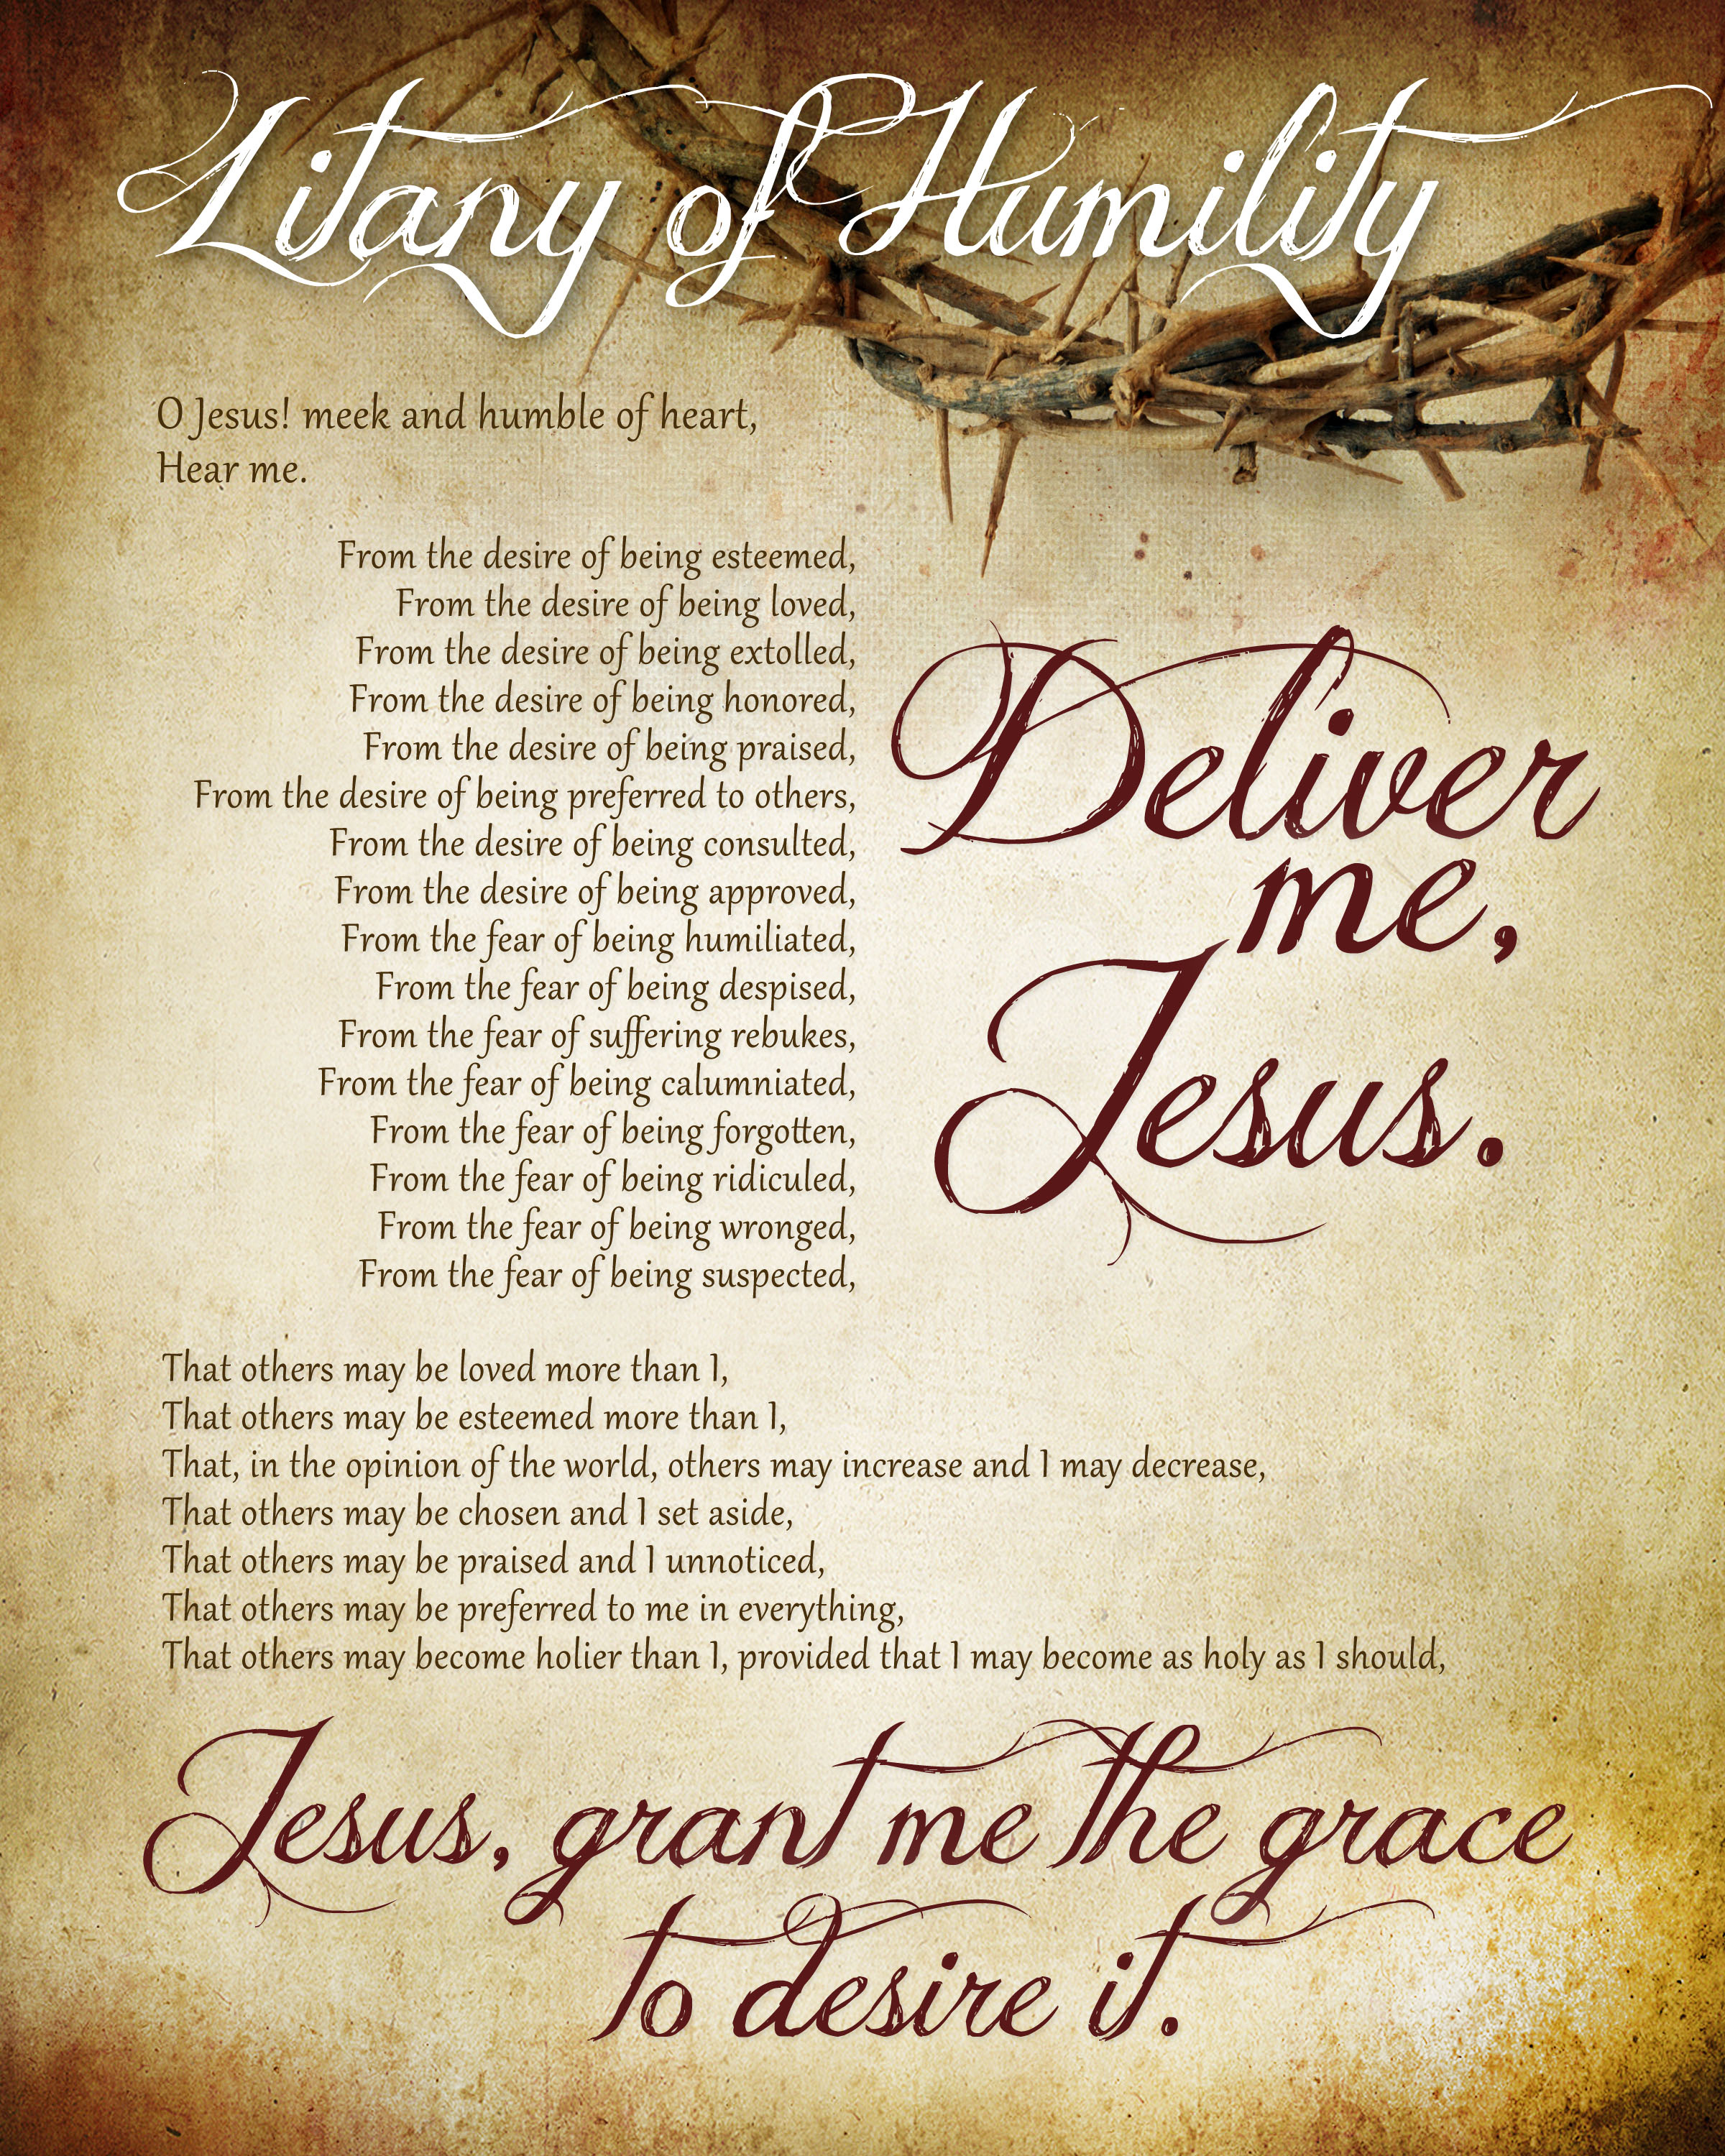 Litany Of Humility Free Printable - How To Nest For Less™ - Free Printable Catholic Prayer Cards